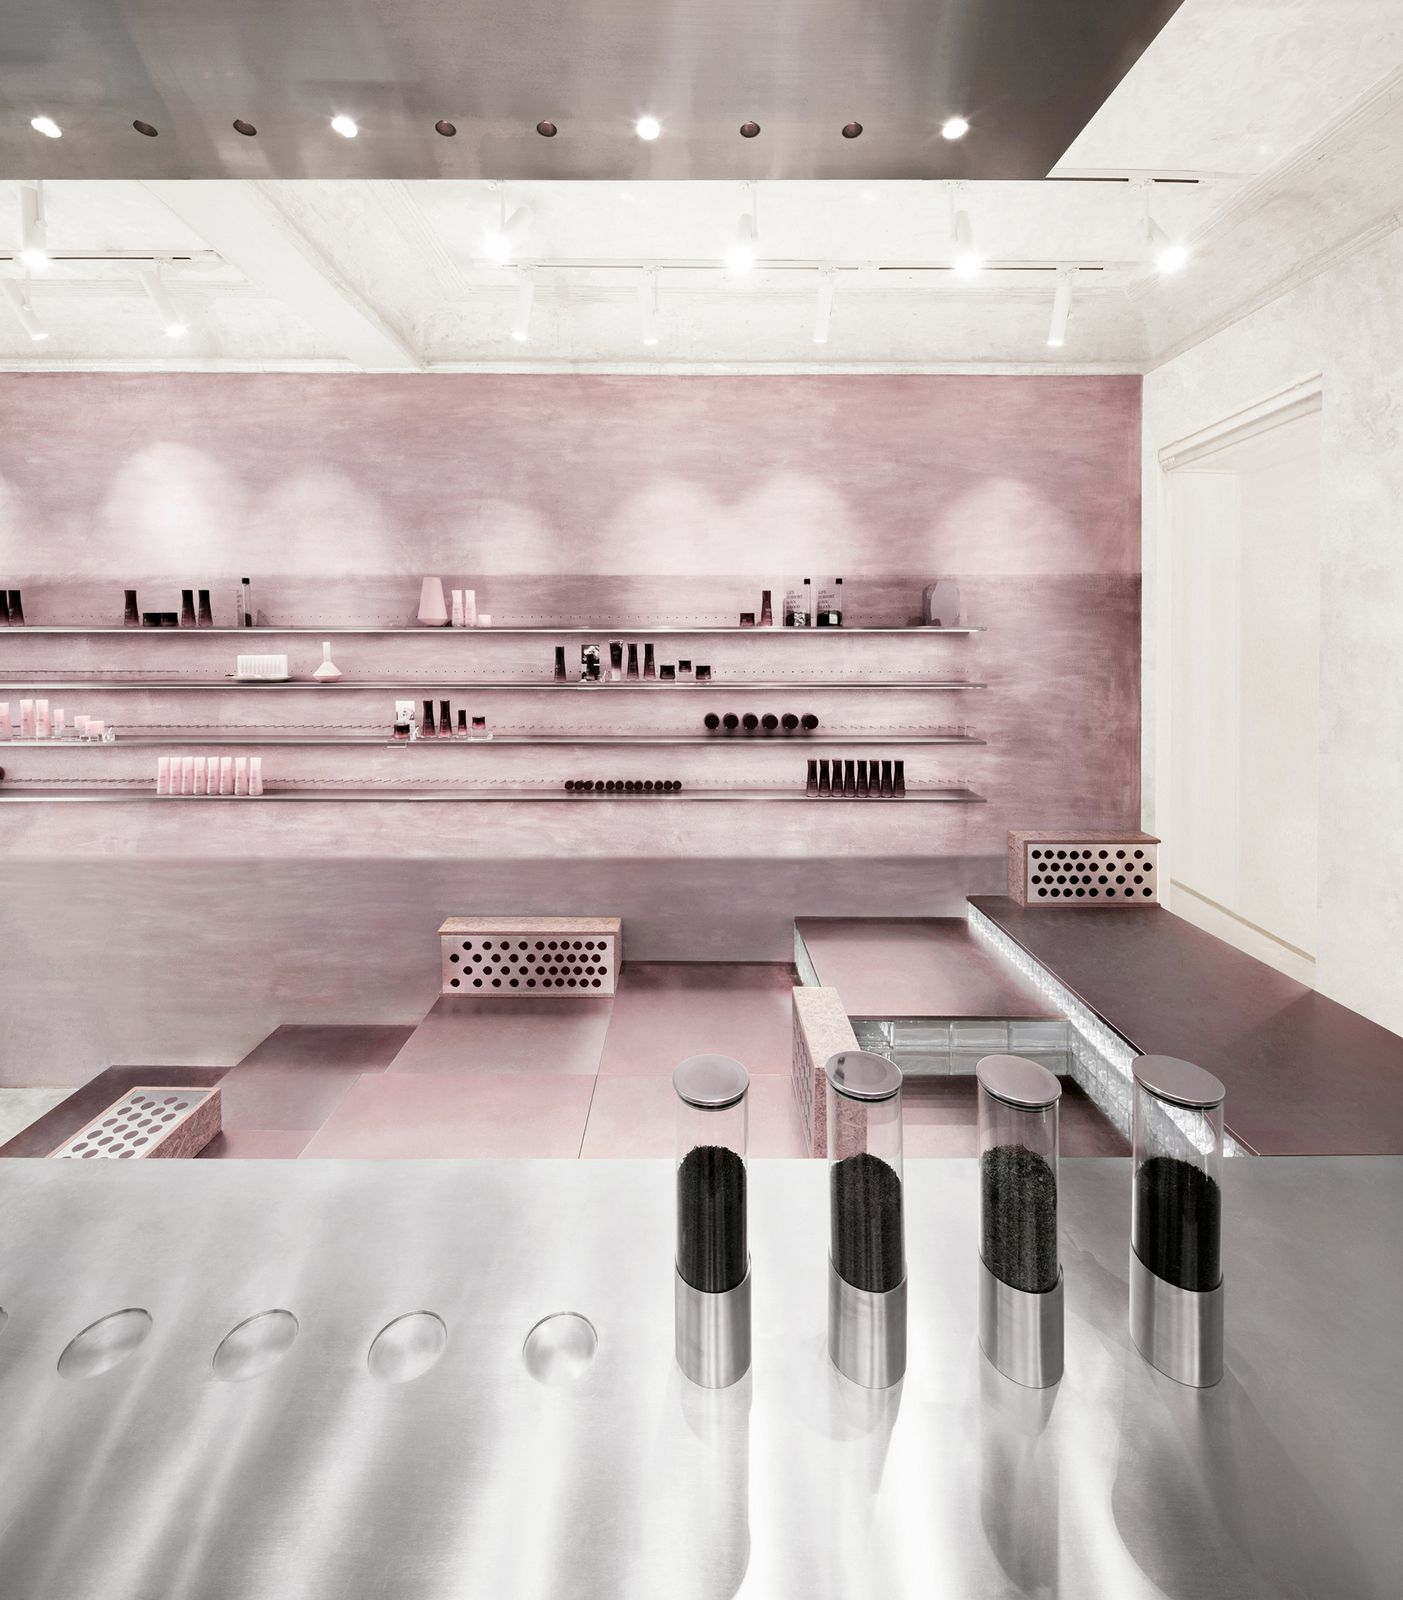 COSMETEA STORE, A TEA COSMETICS HOUSE FLOATING IN THE MOUTAINS, DESIGNED BY NAX ARCHITECTS